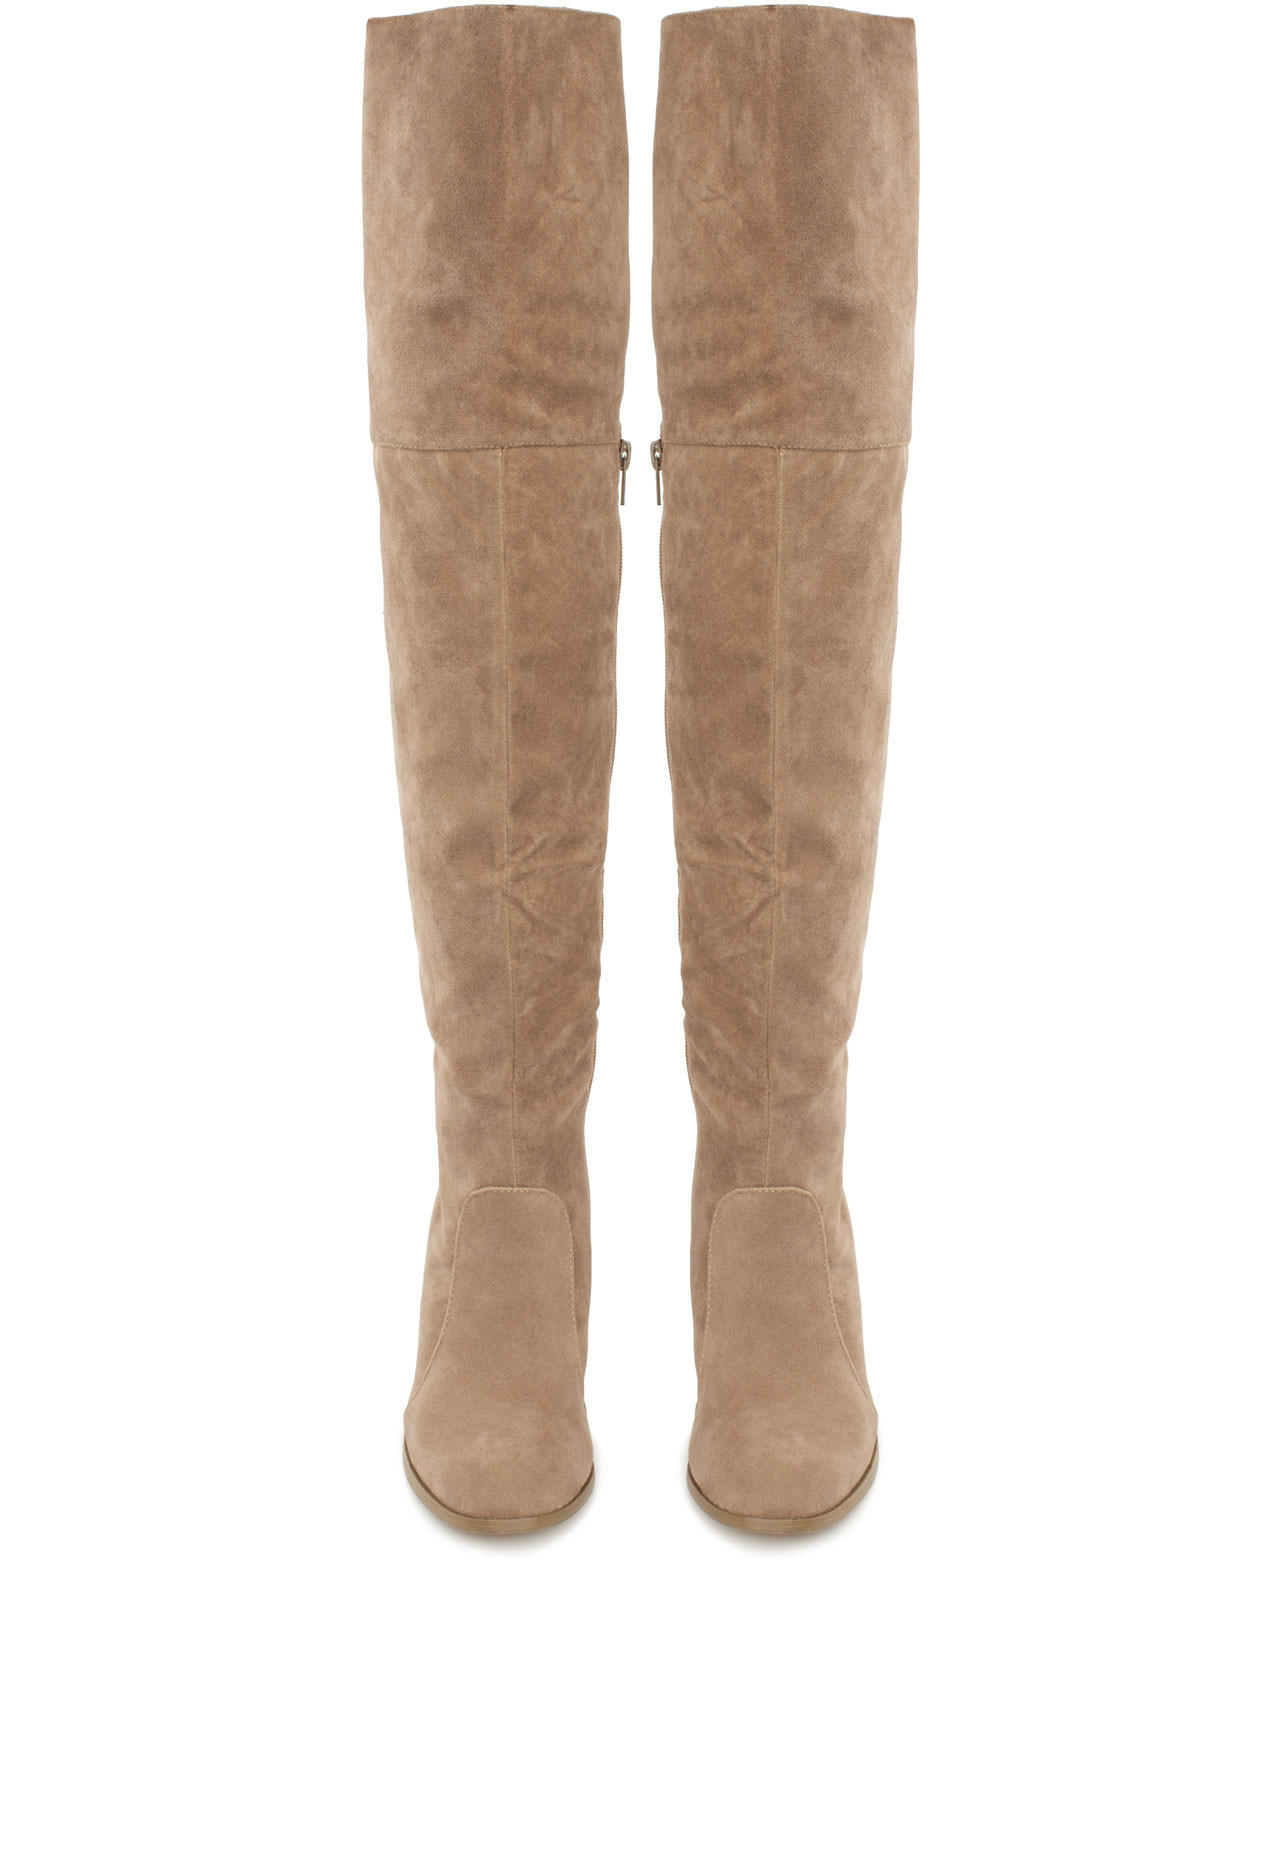 Locklyn Suede Knee High Boots - Taupe from Shop Priceless